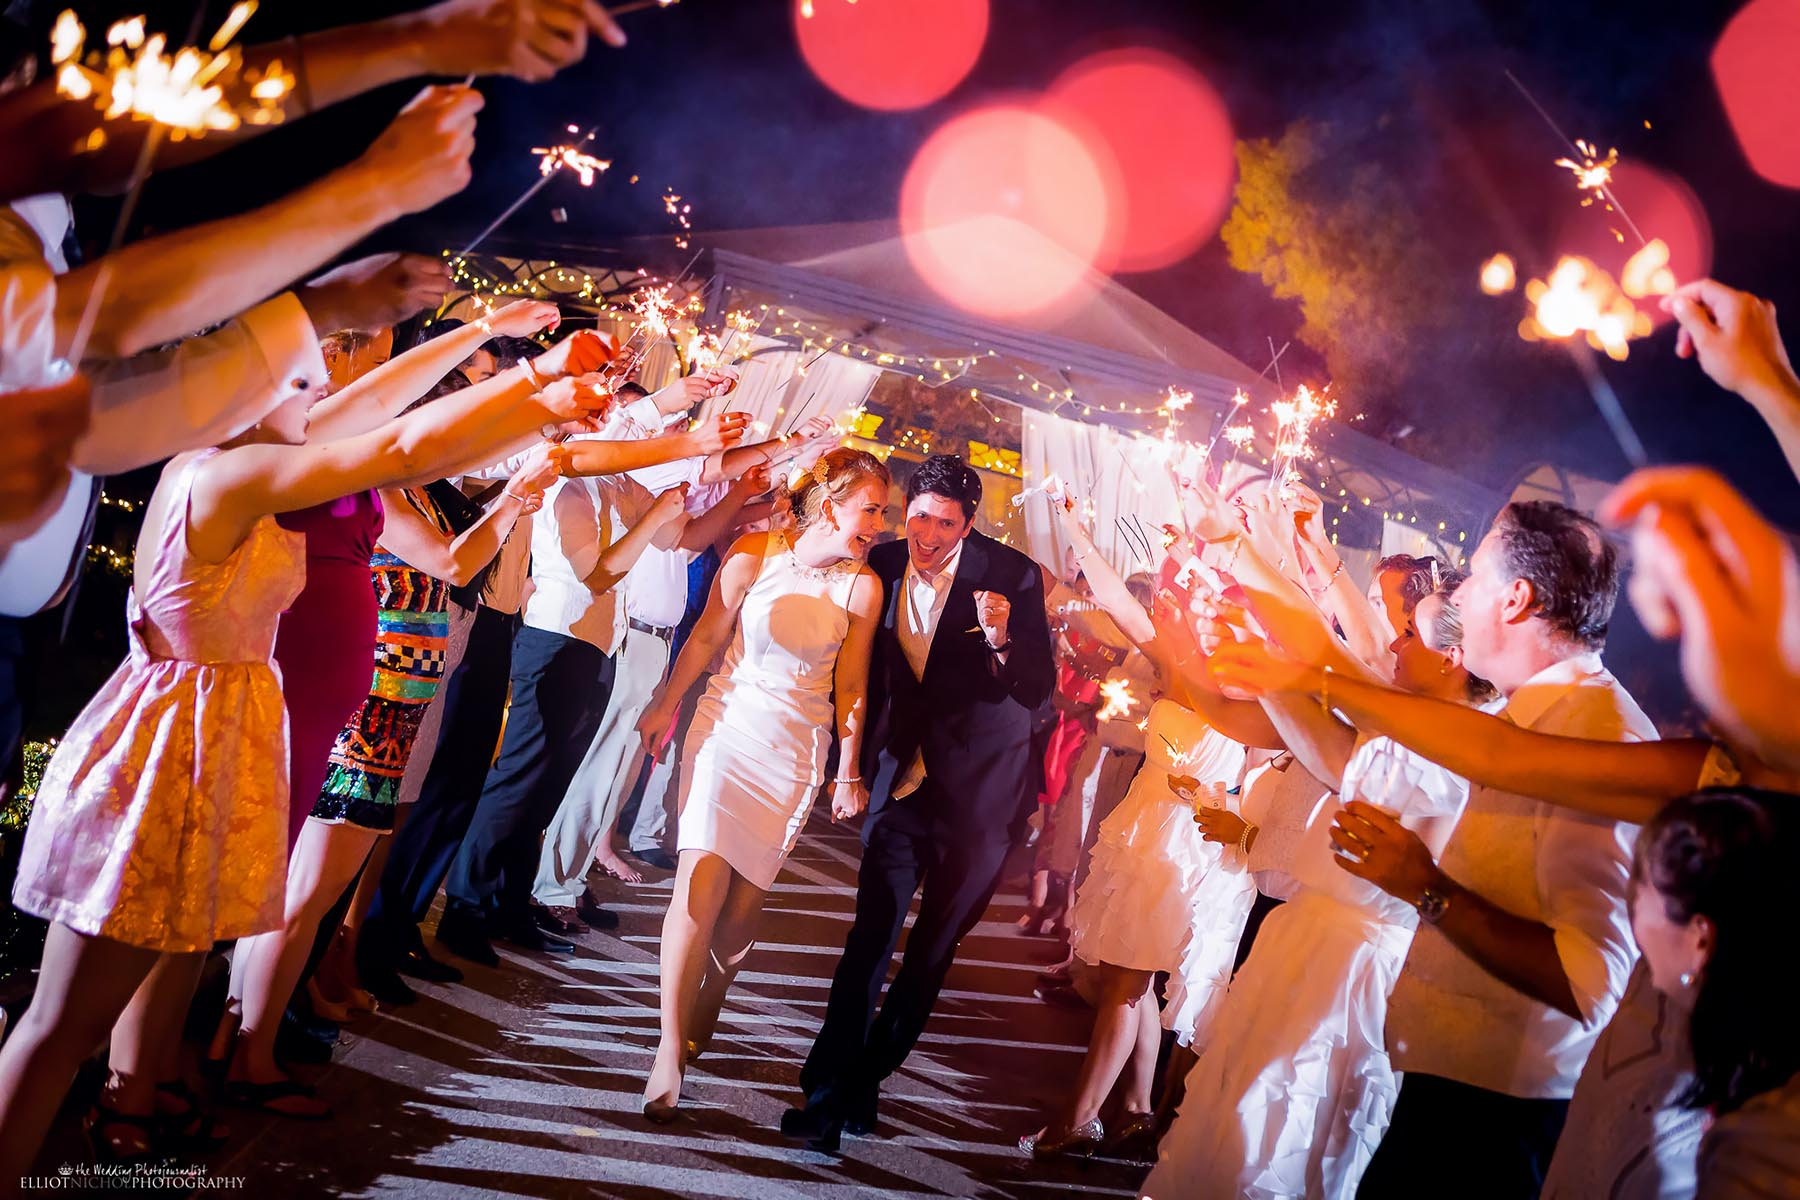 Newcastle Upon Tyne couple leaving their wedding reception venue through a sparking farewell from their guests holding sparklers. Photo by North East wedding photographer Elliot Nichol.